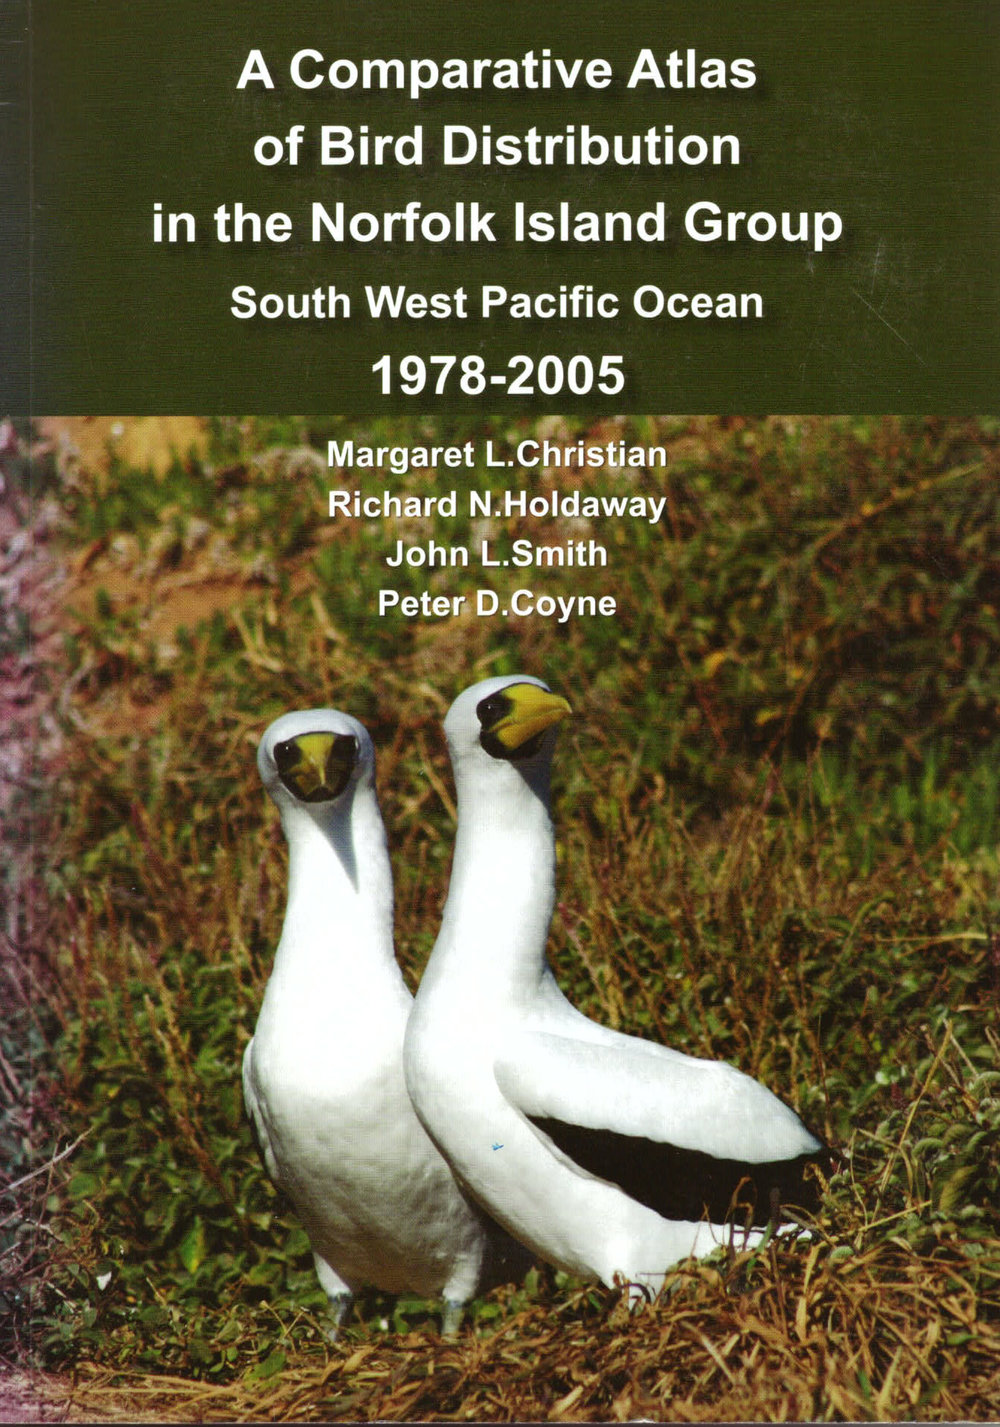 Published in 2012 by the Flora & Fauna Society of Norfolk Island. Available from Margaret Christian, P.O. Box 999, Norfolk Island, South West Pacific.